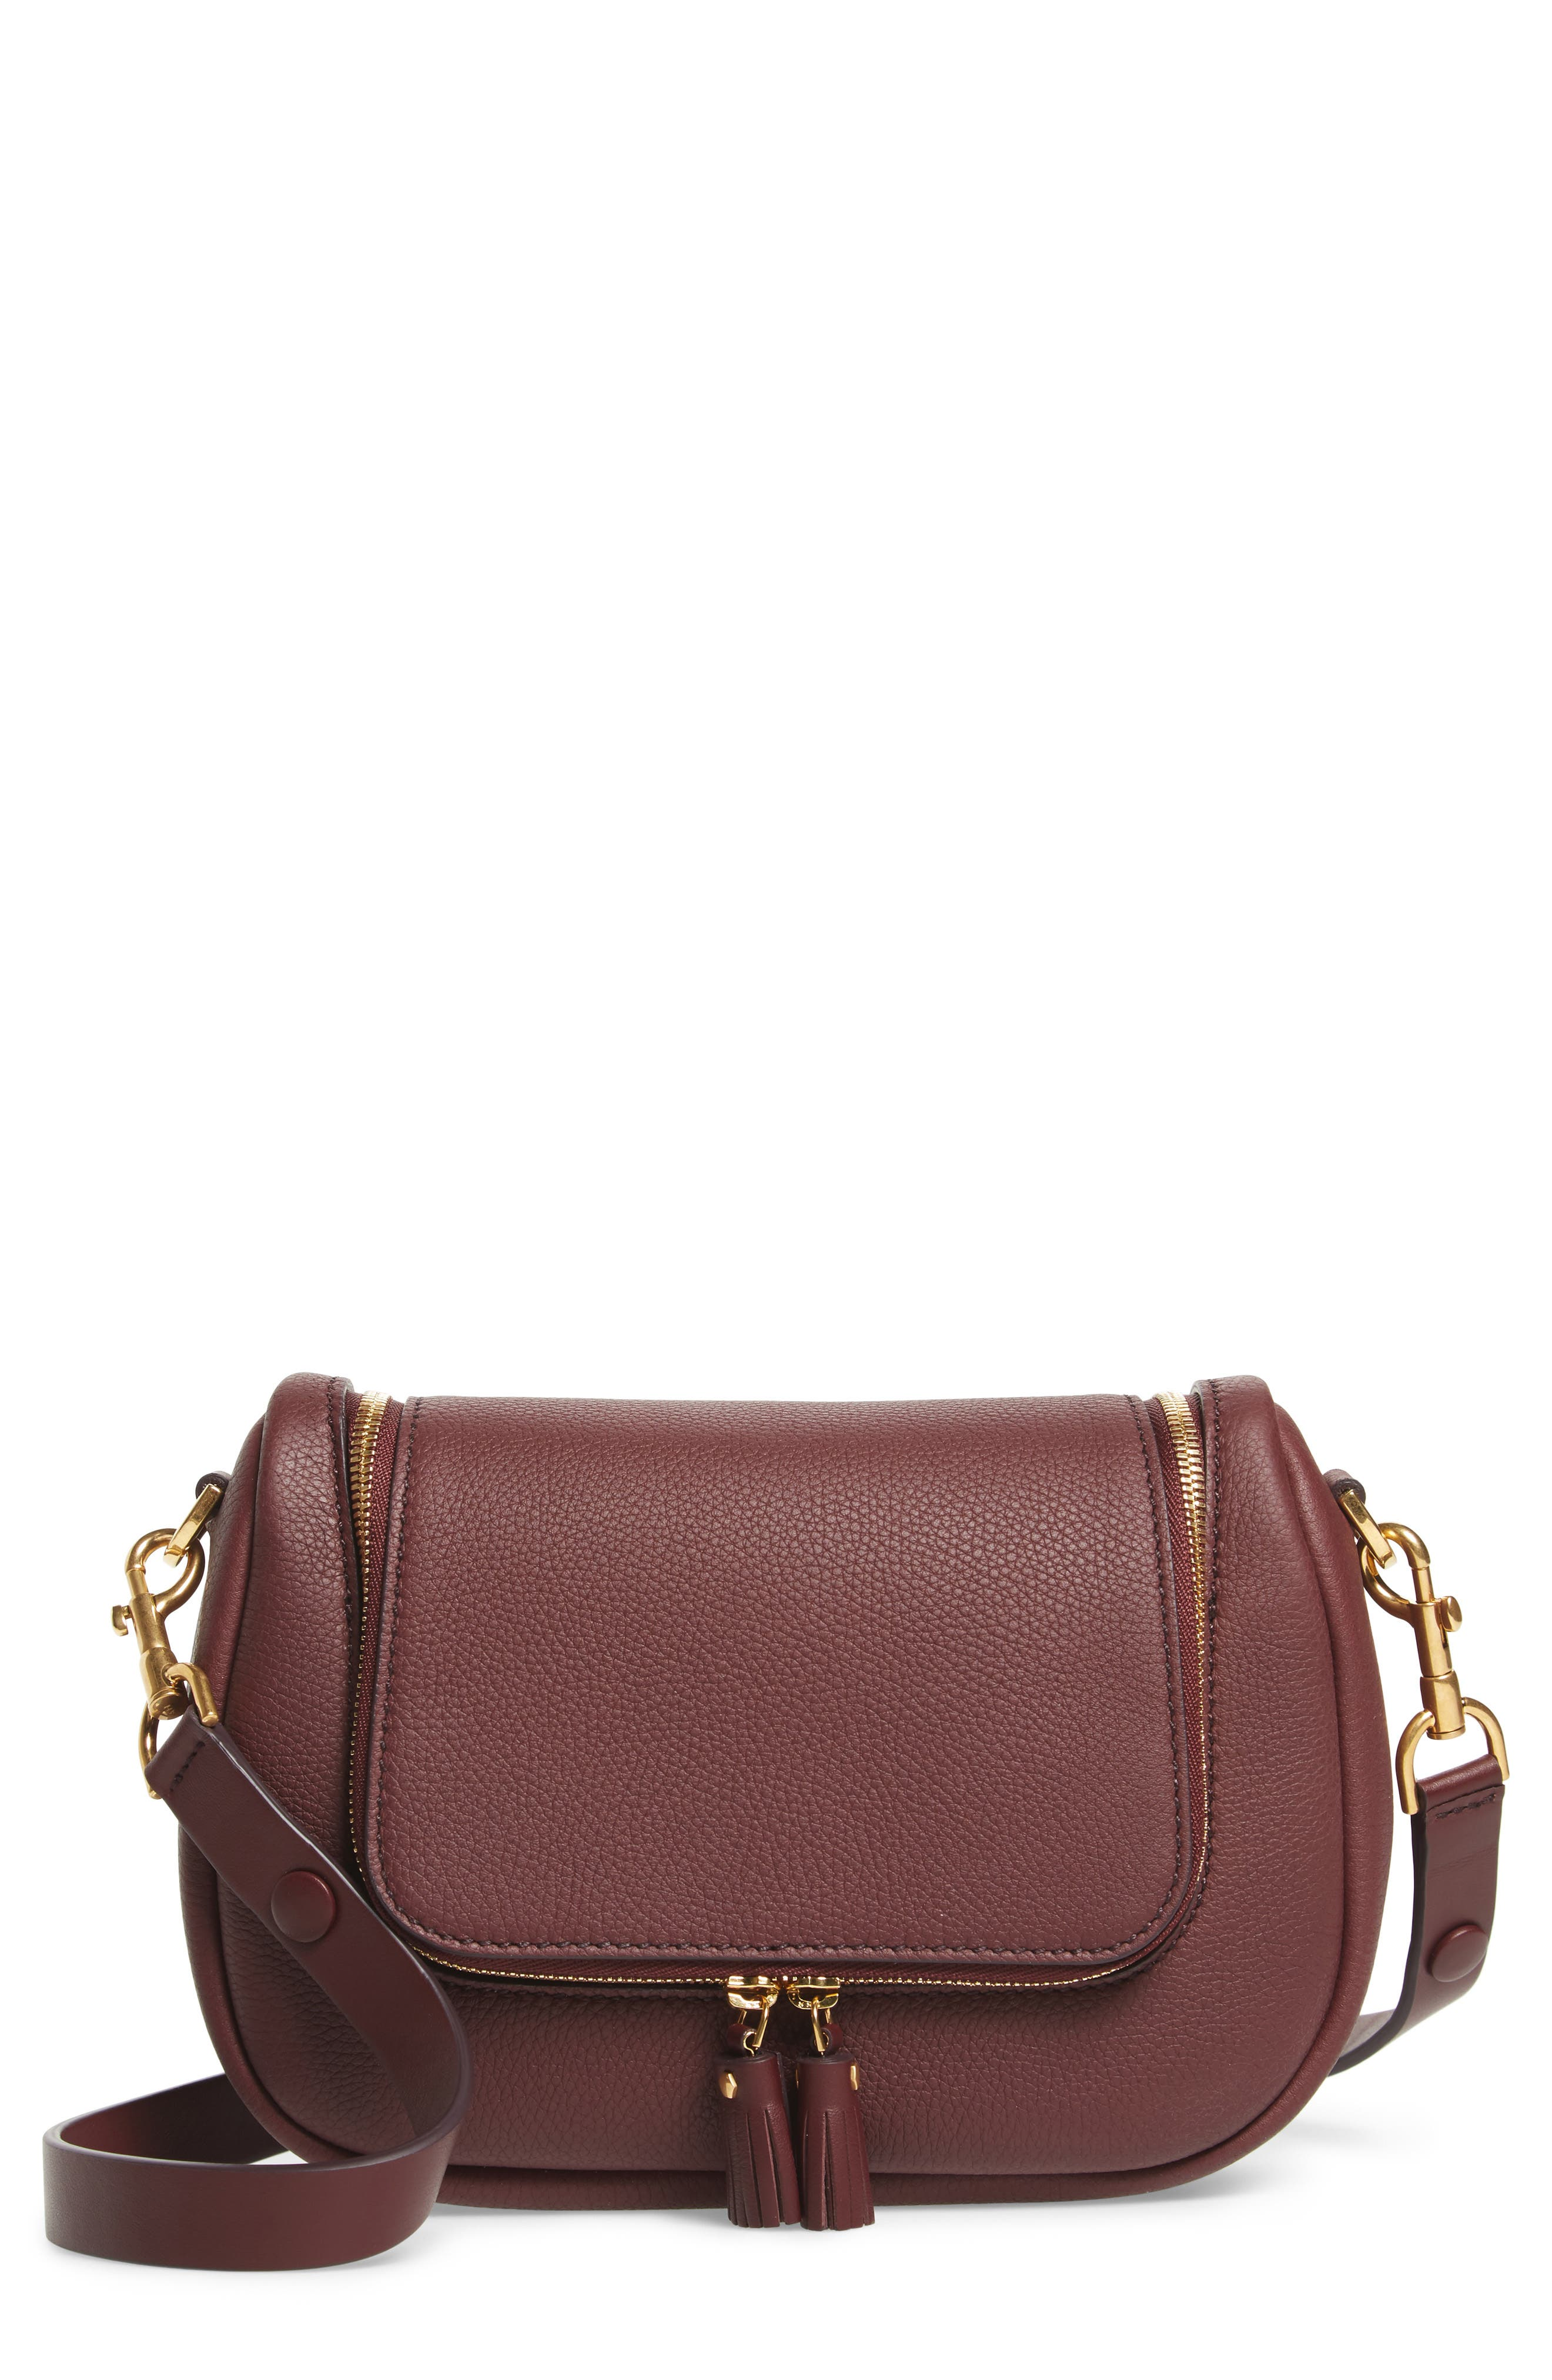 Small Vere Leather Crossbody Satchel,                         Main,                         color, CLARET